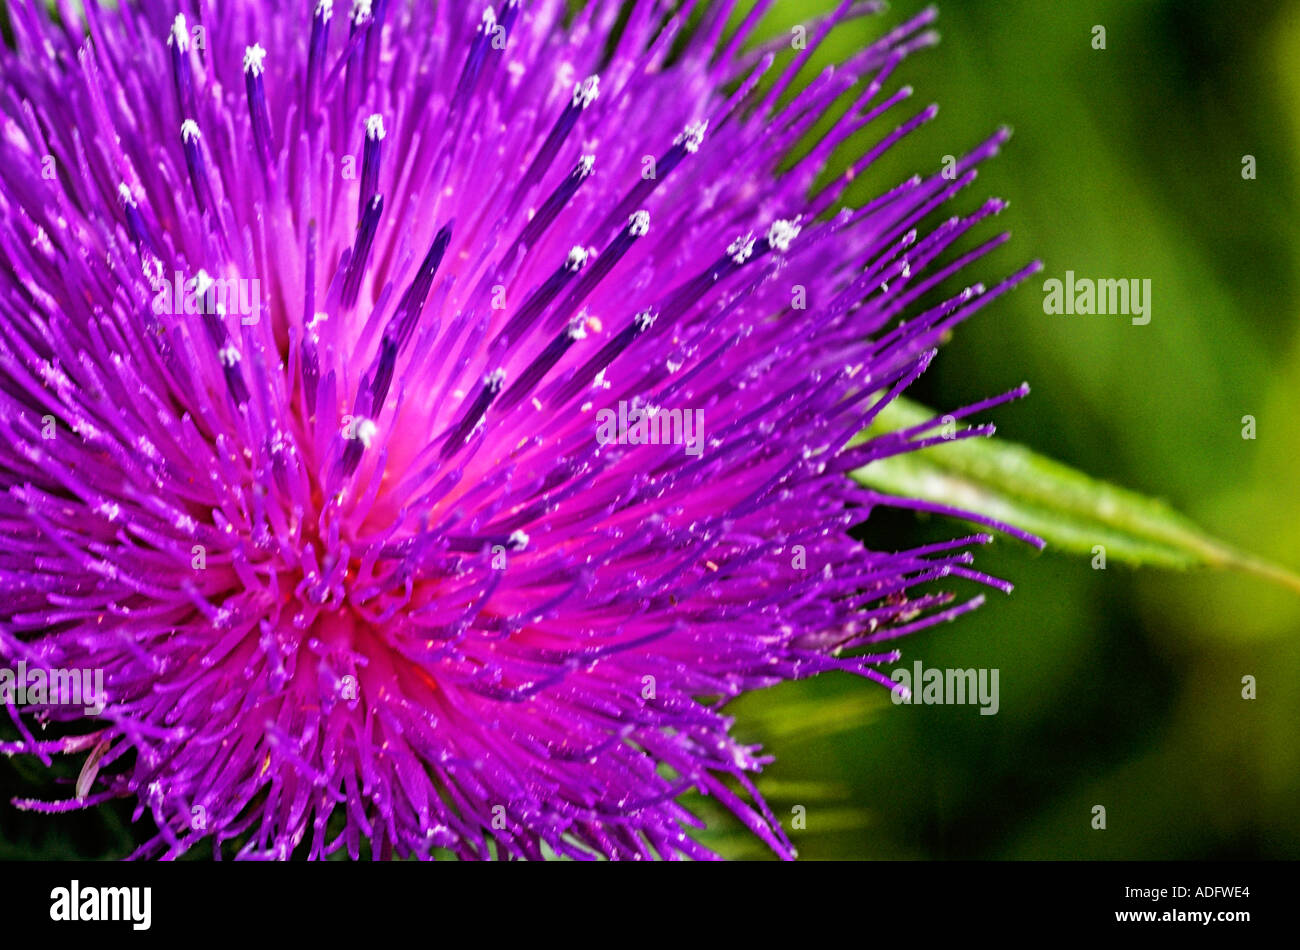 flower detail of a thistle national emblem of scotland stock photo